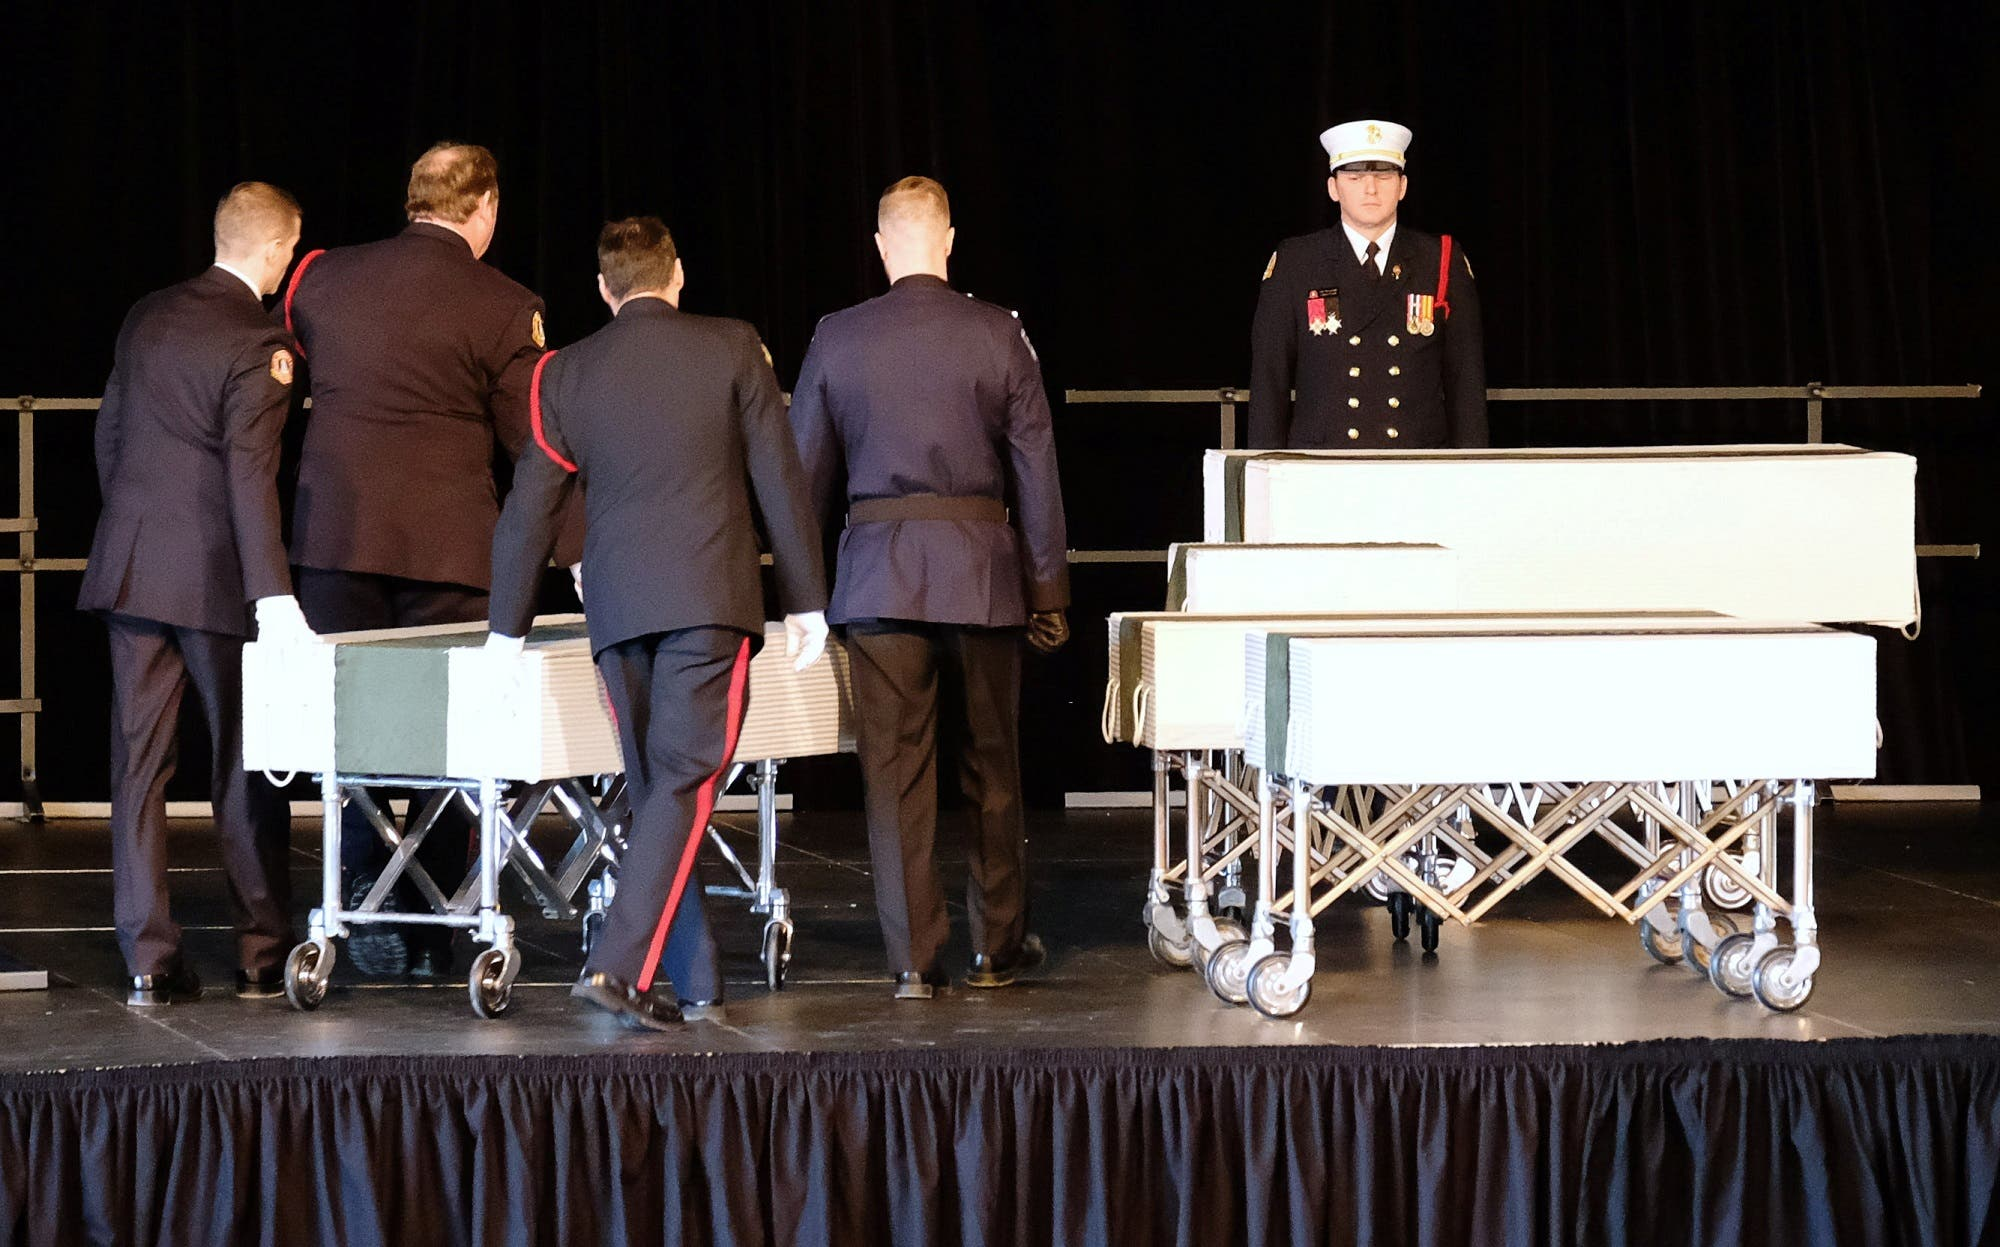 Halifax Regional Police and Fire Honour Guard move one of the caskets of the Barho family children during their funeral service. (Reuters)